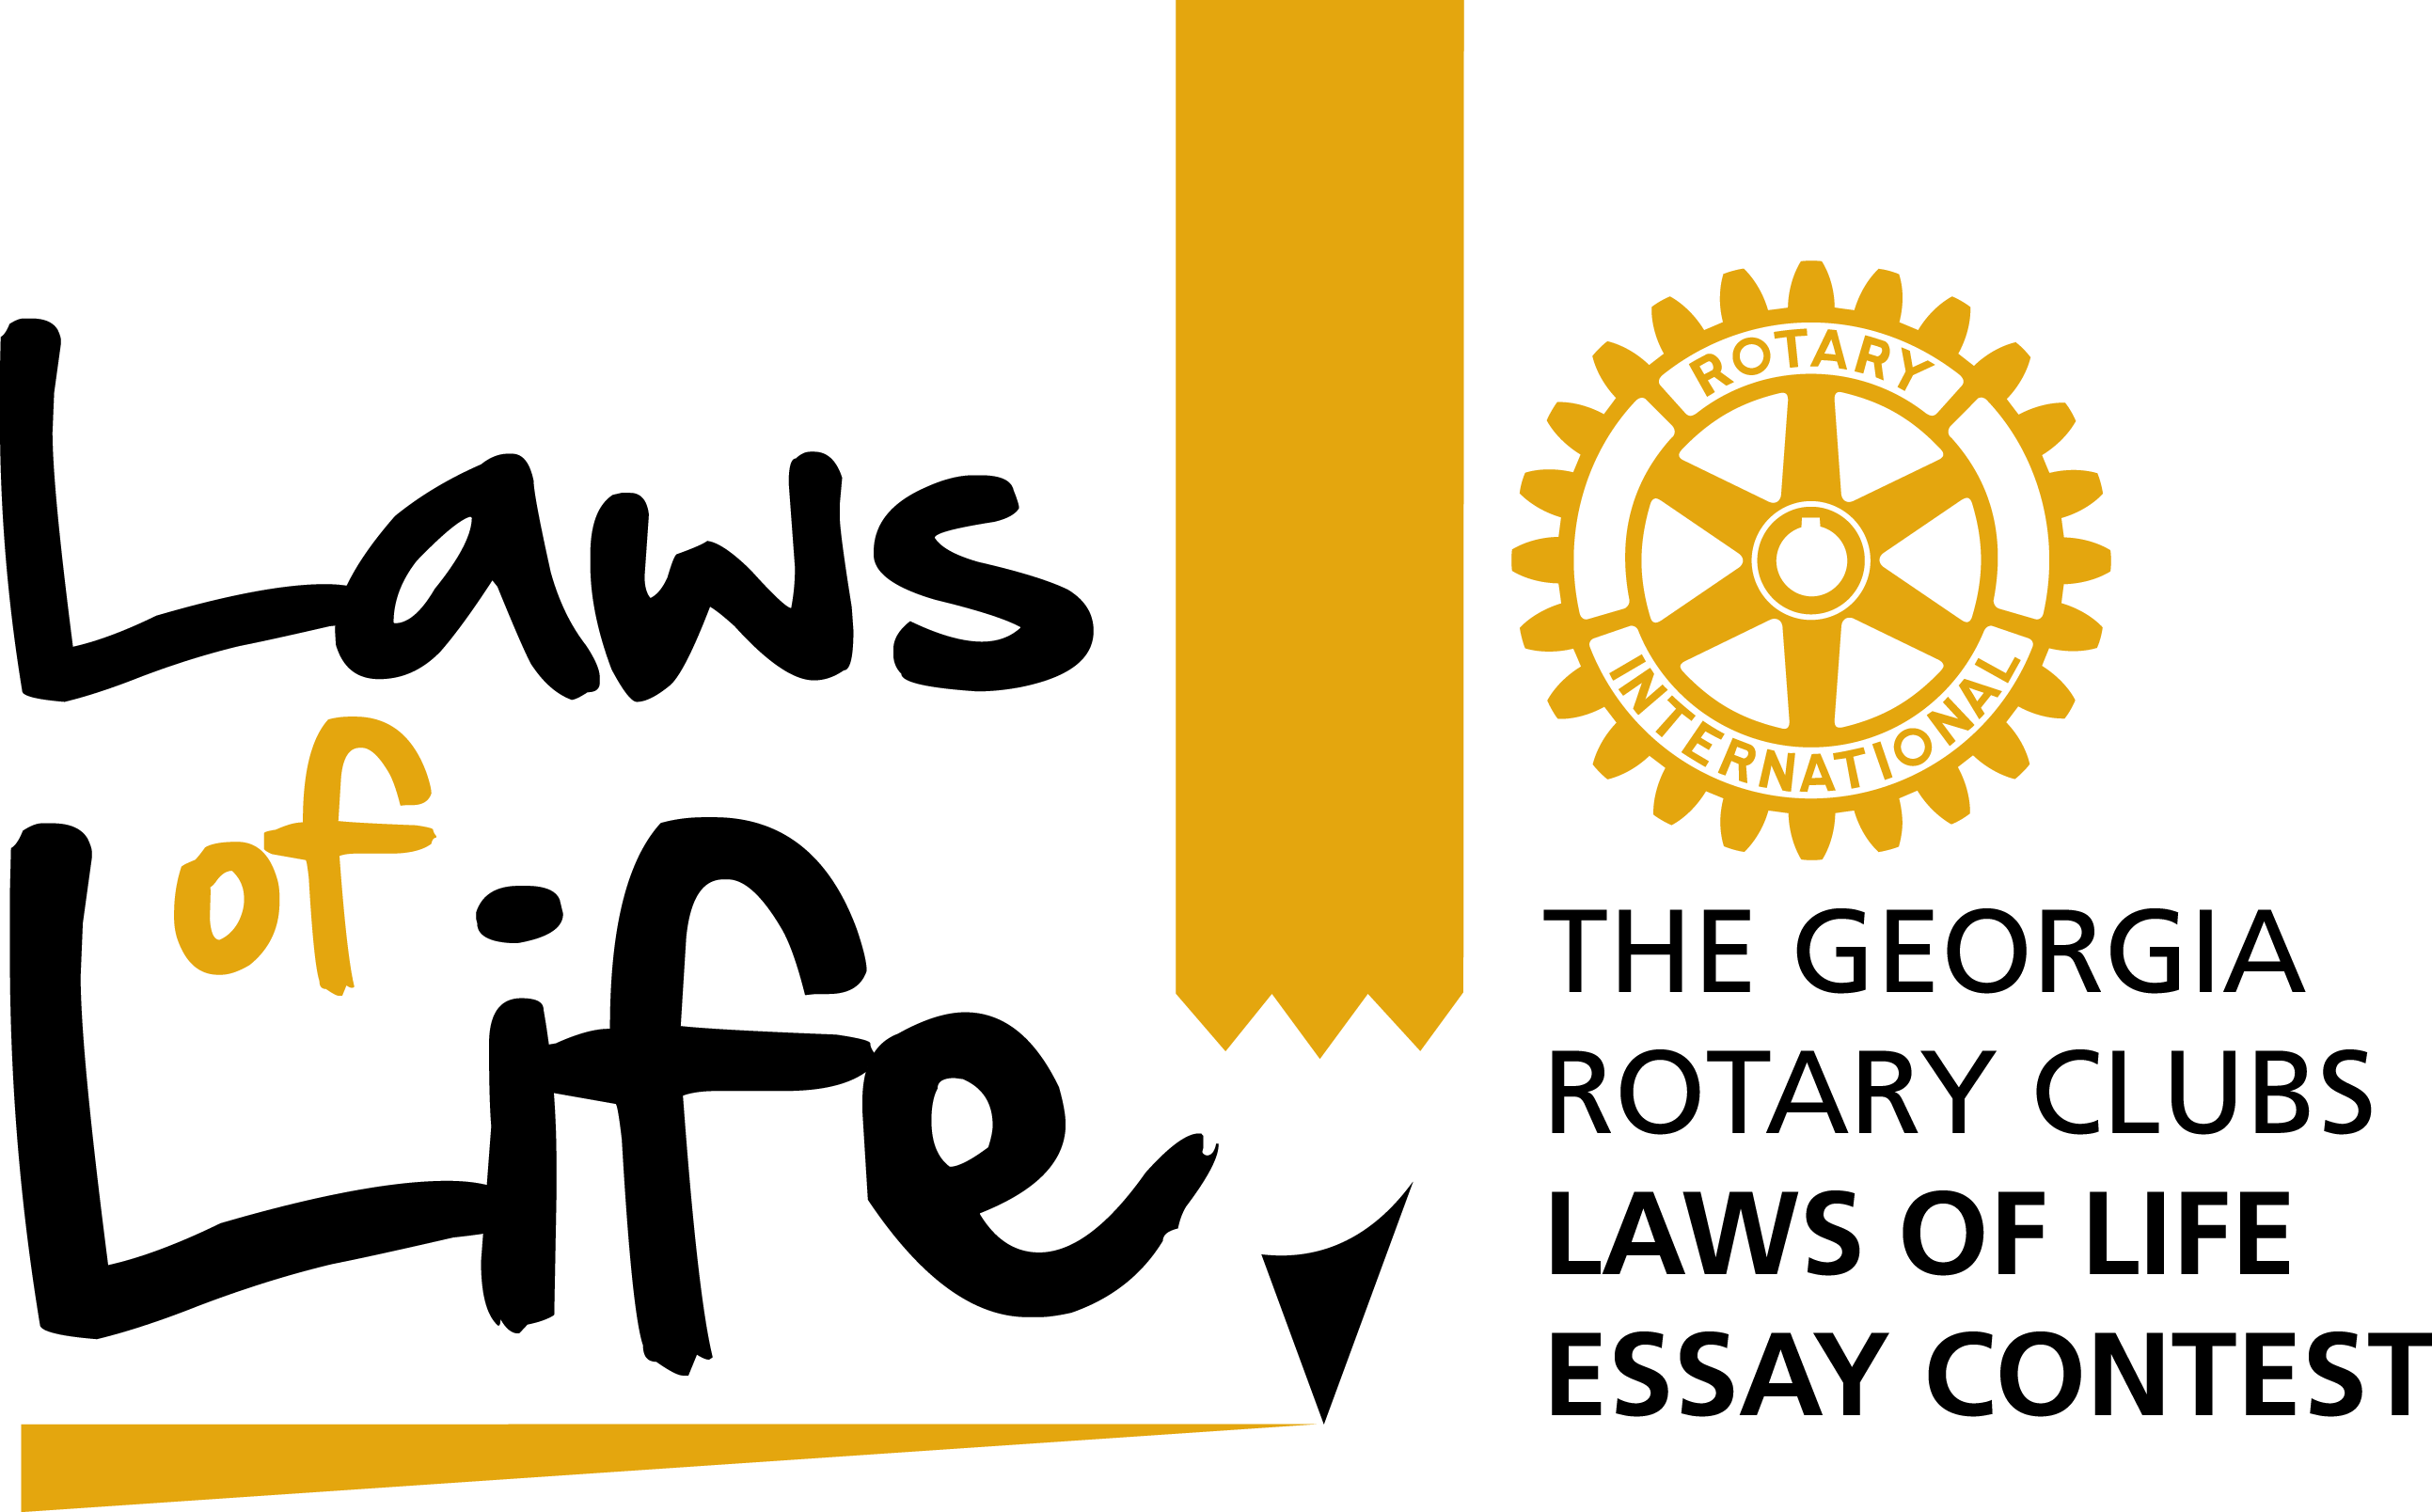 laws of life essay example Student writing tips & awards examples of laws of life the georgia laws of life essay contest is a character education and ethical literacy program.